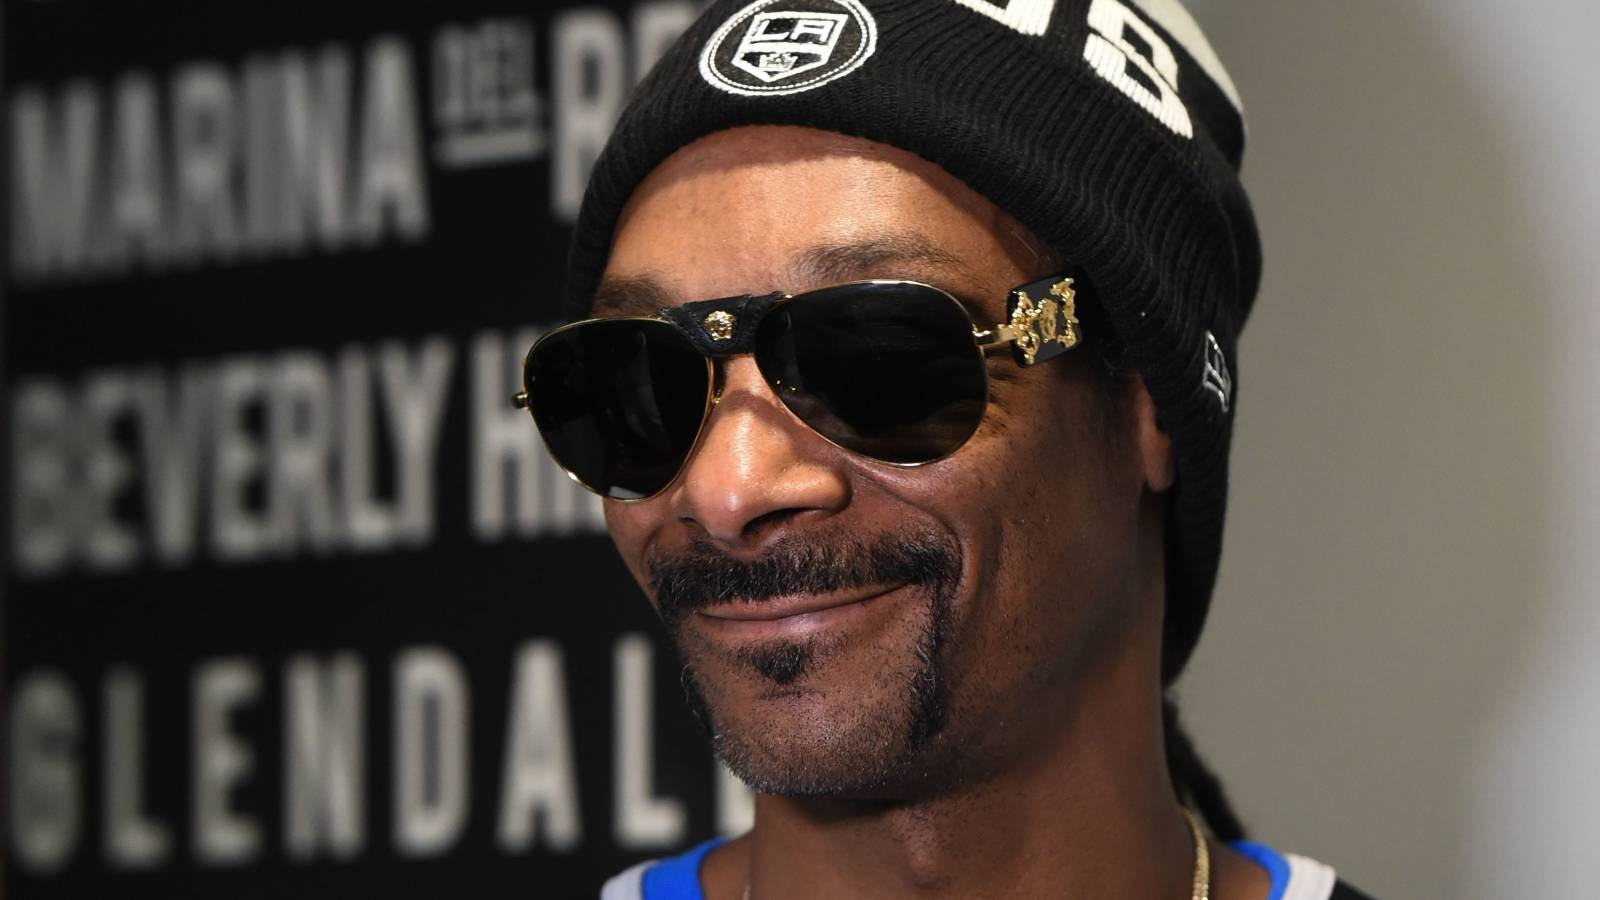 Snoop Dogg Talks Los Angeles Being United Following George Floyd Protests